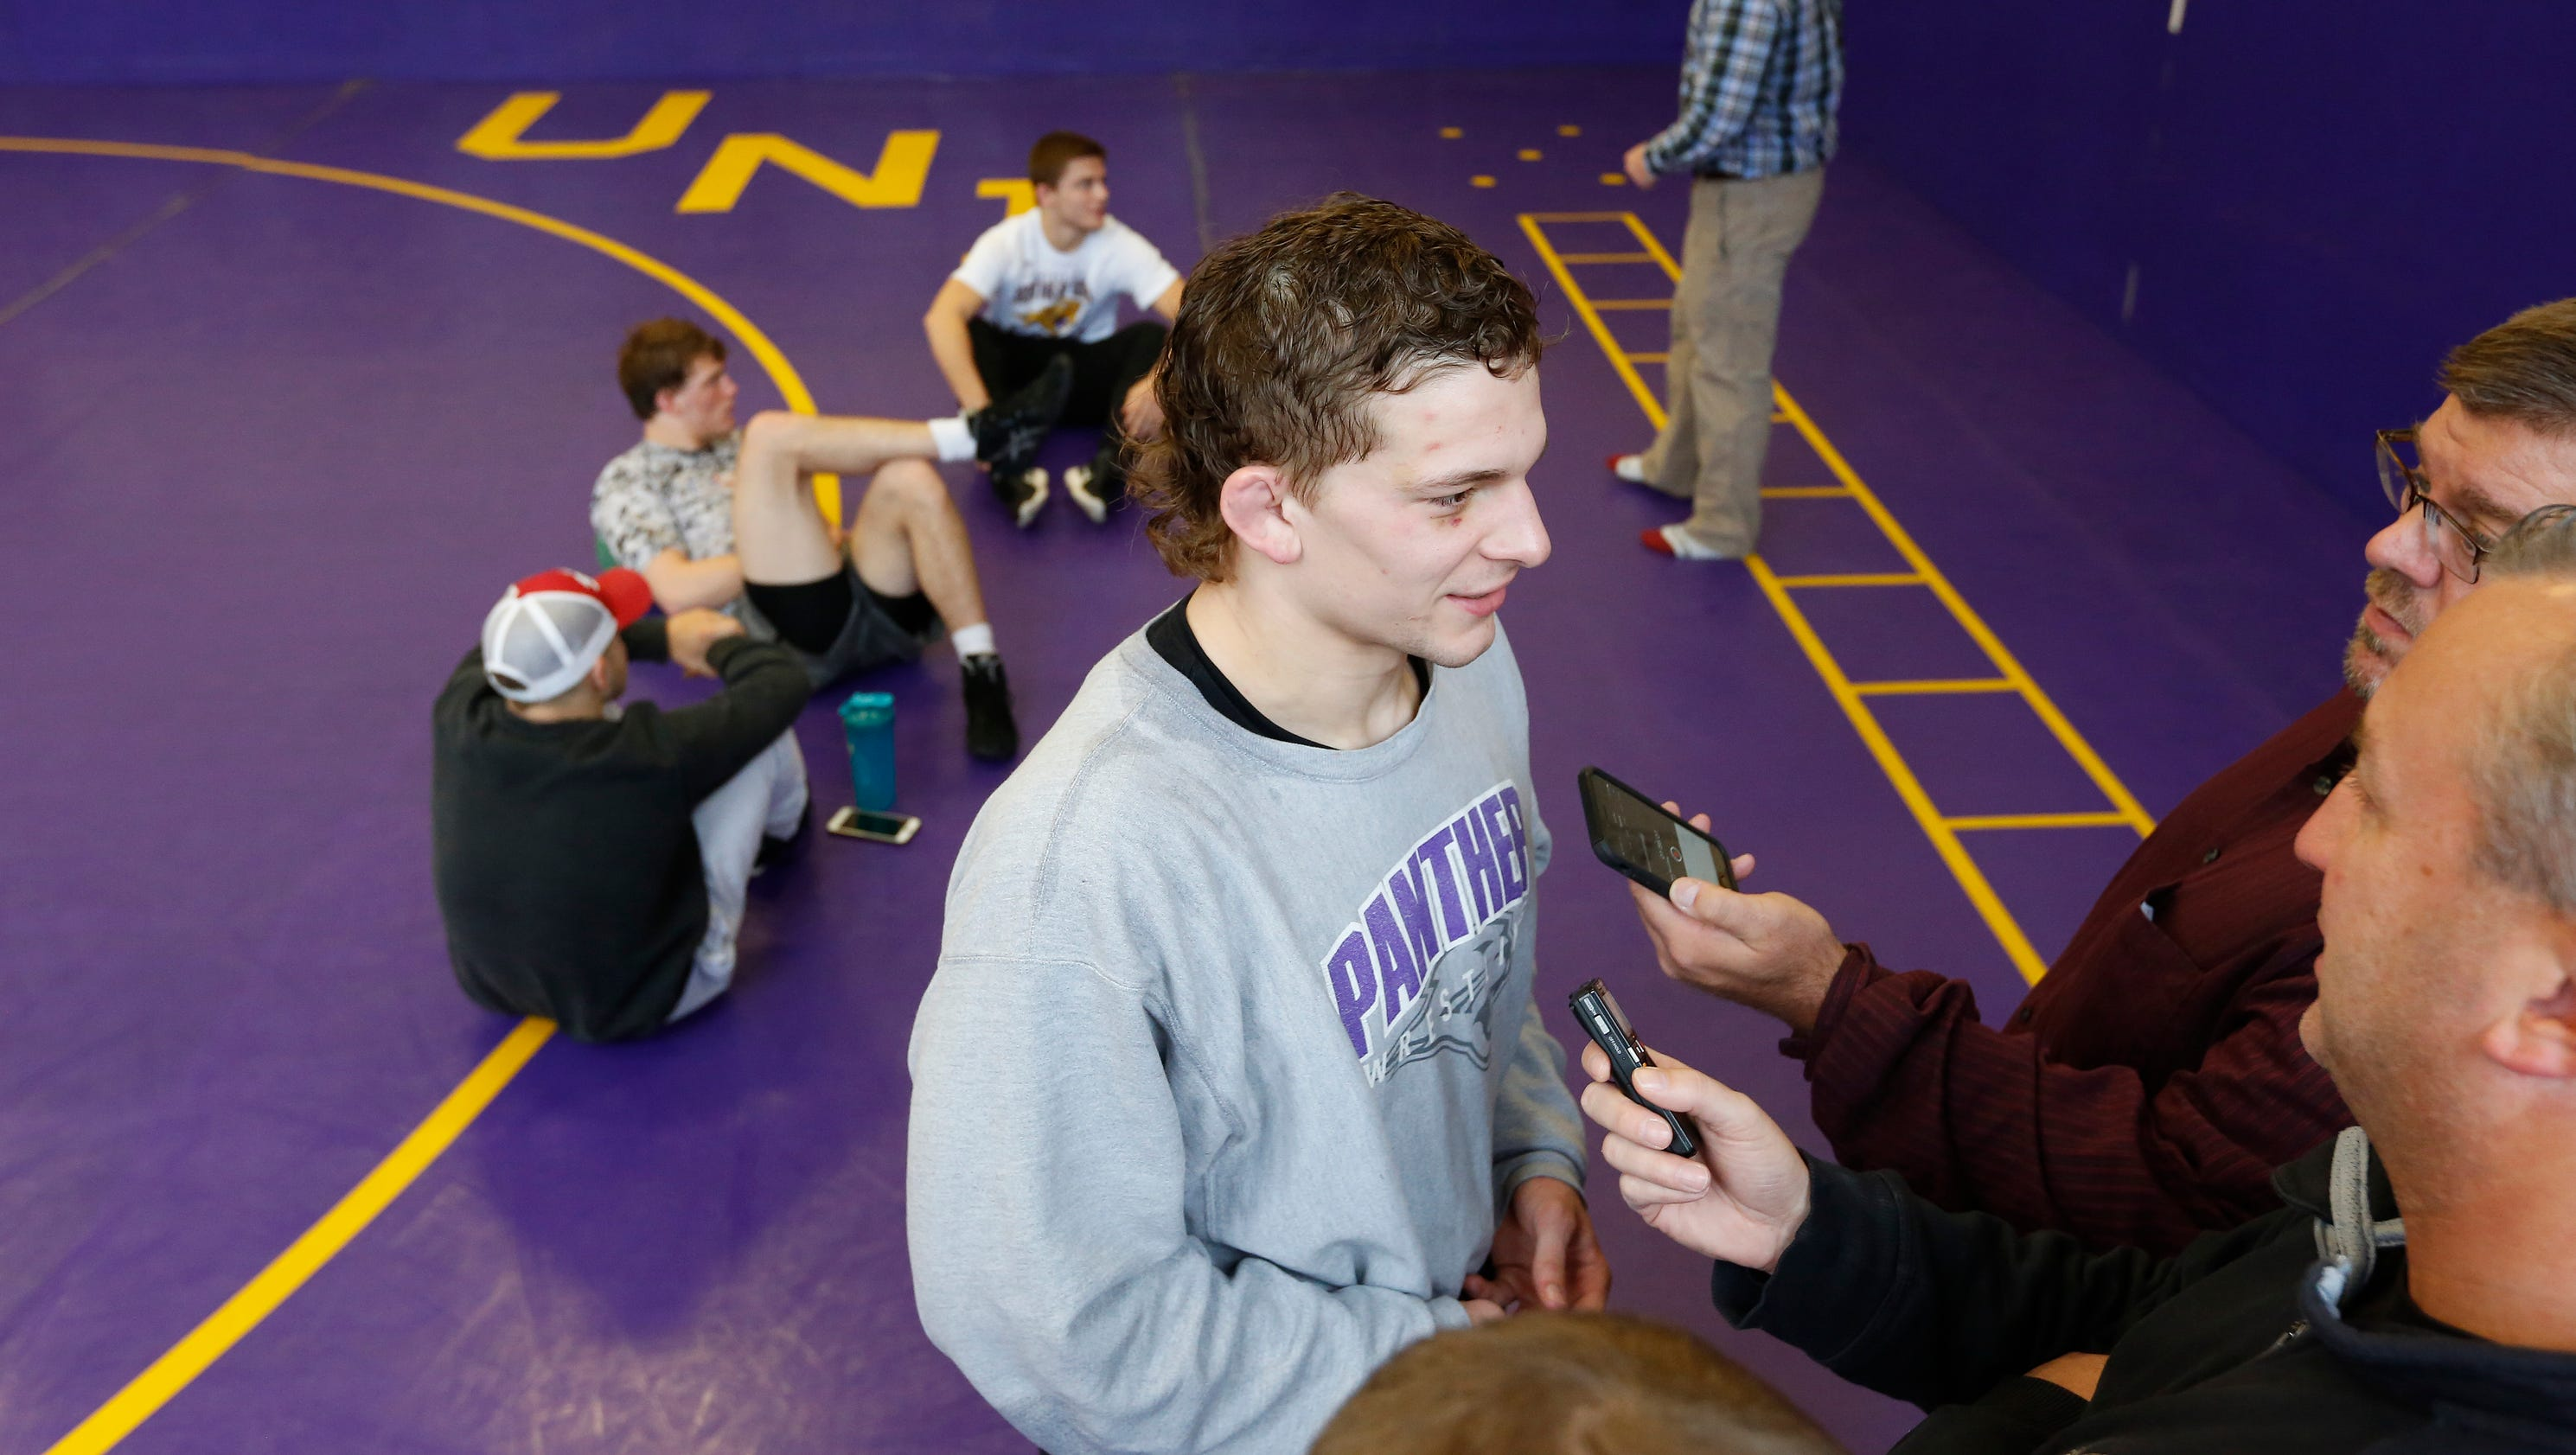 636451614968091083-110117mp-uni-wrestling-media-day-8